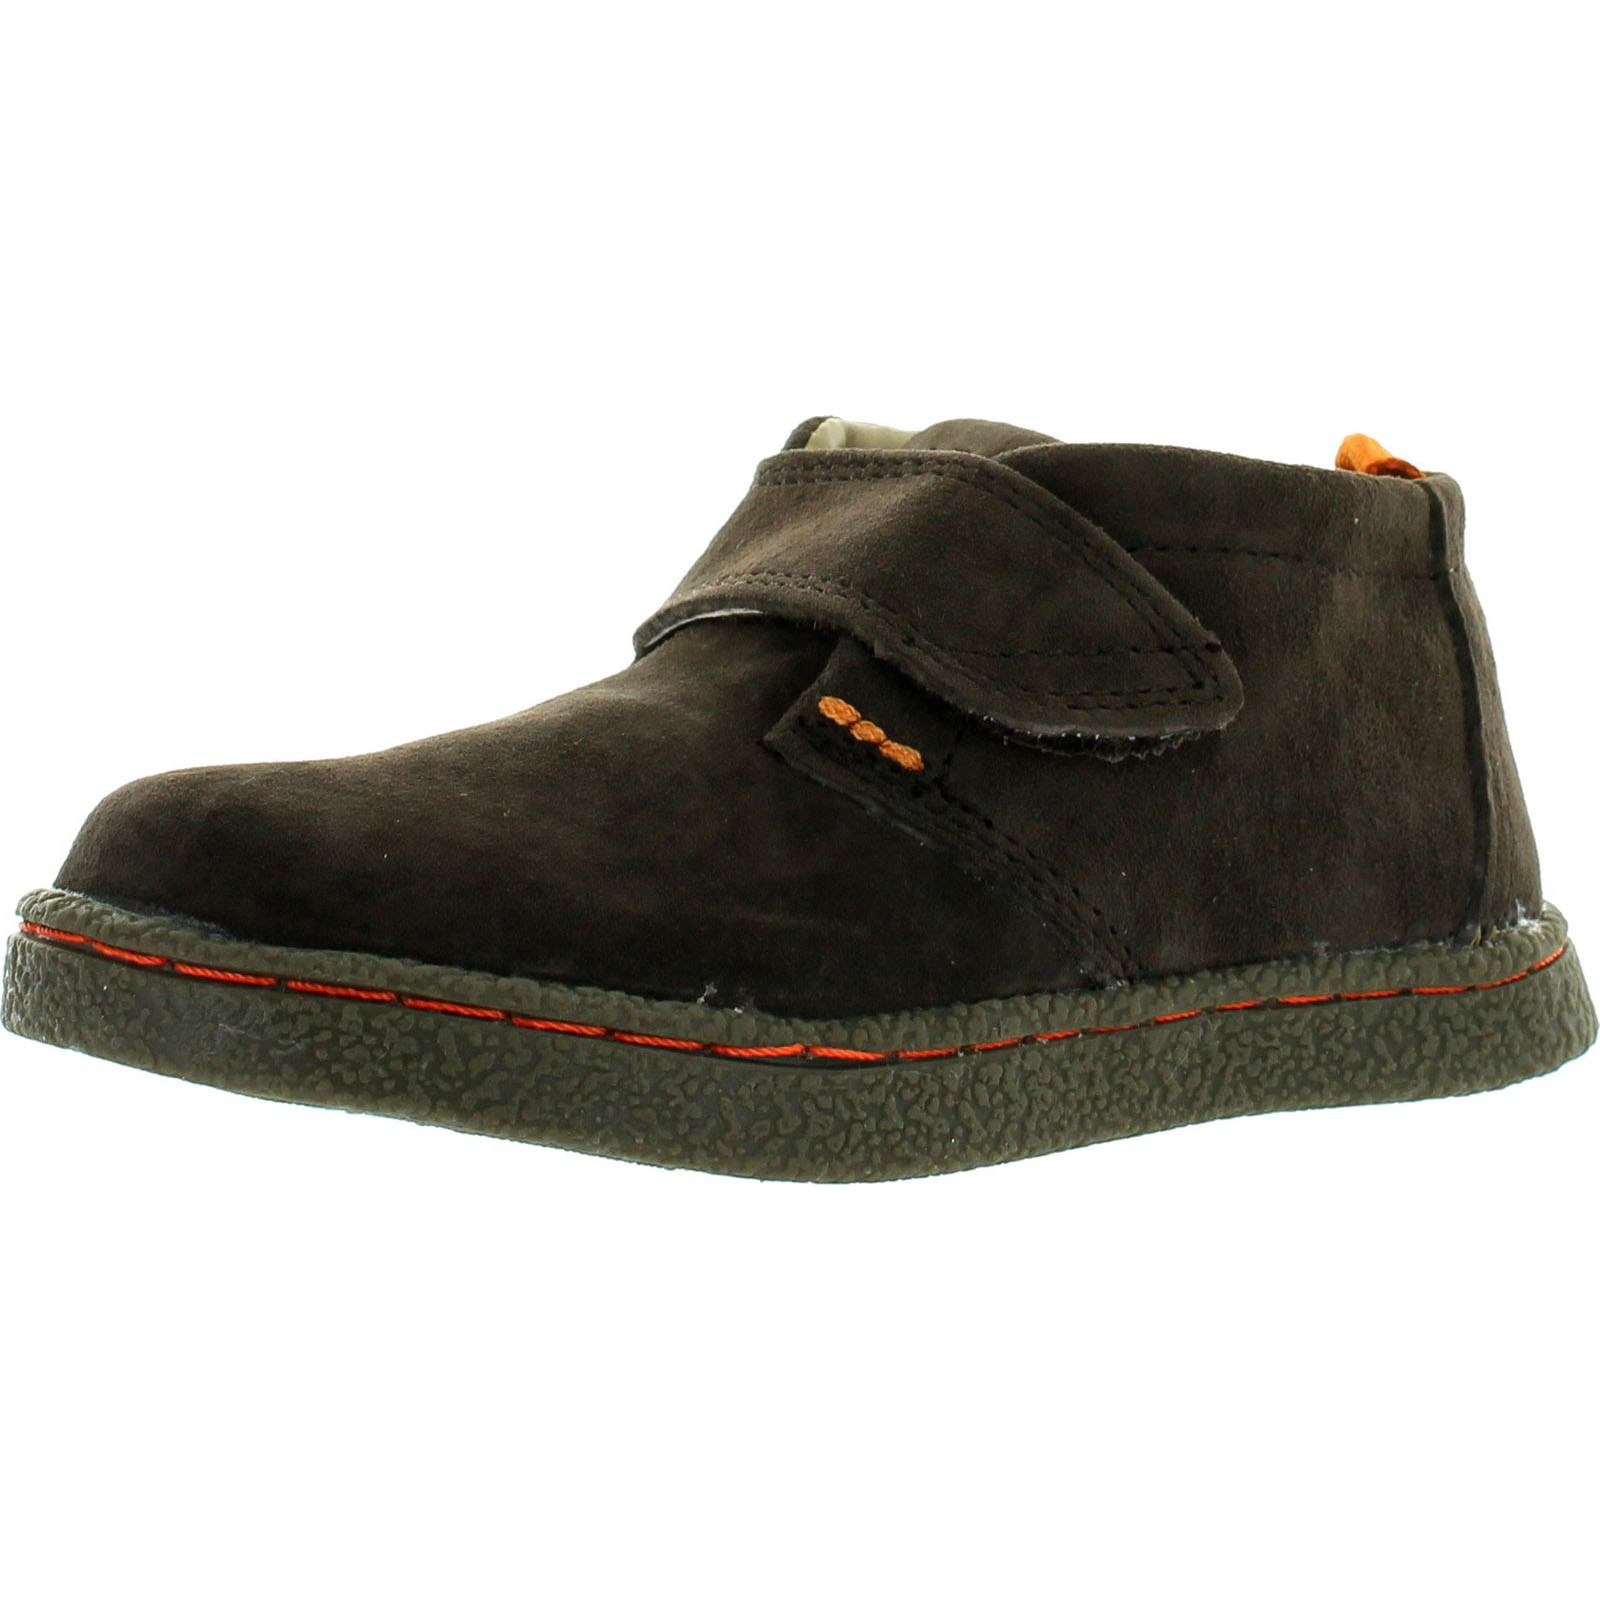 Hush Puppies Boys Tennyson Chukka Velcro Boots by Hush Puppies